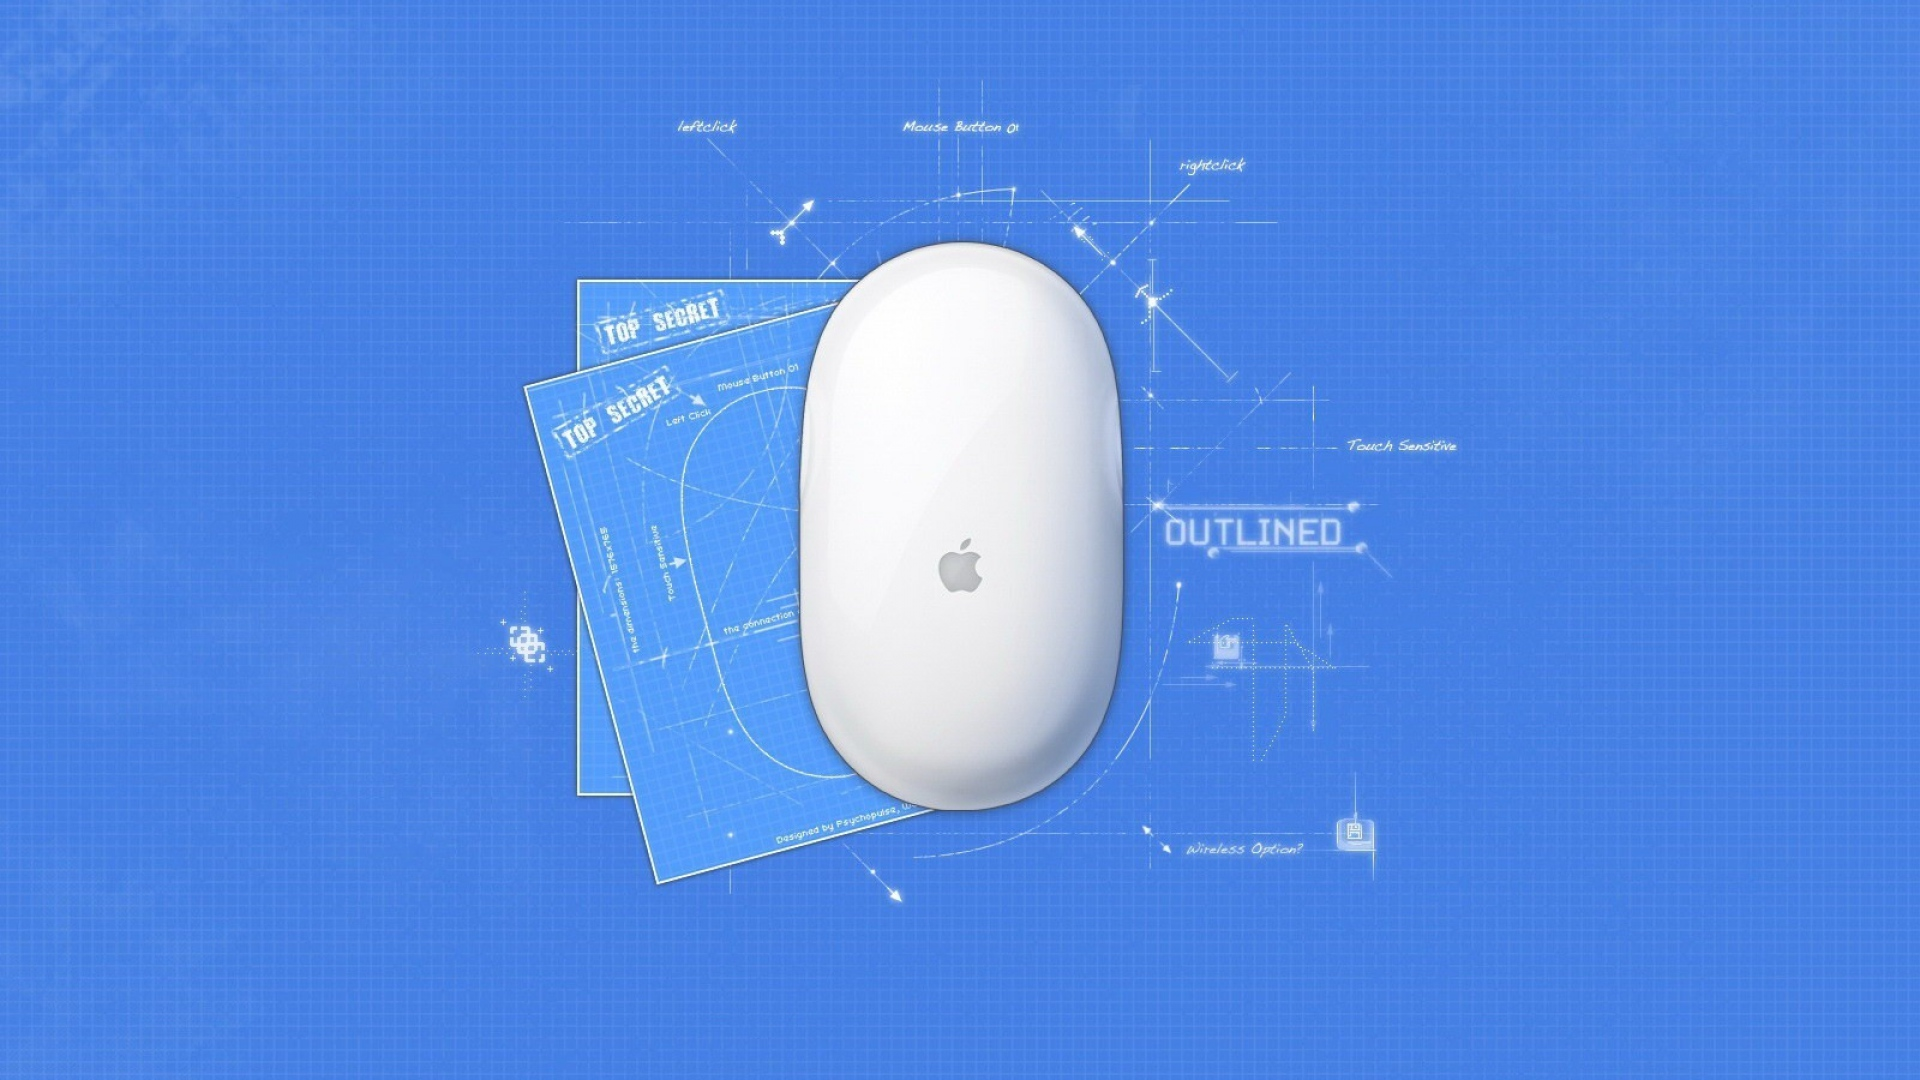 Download wallpaper 1920x1080 mouse apple white blue blueprint get the latest mouse apple white news pictures and videos and learn all about mouse apple white from wallpapers4u your wallpaper news source malvernweather Image collections